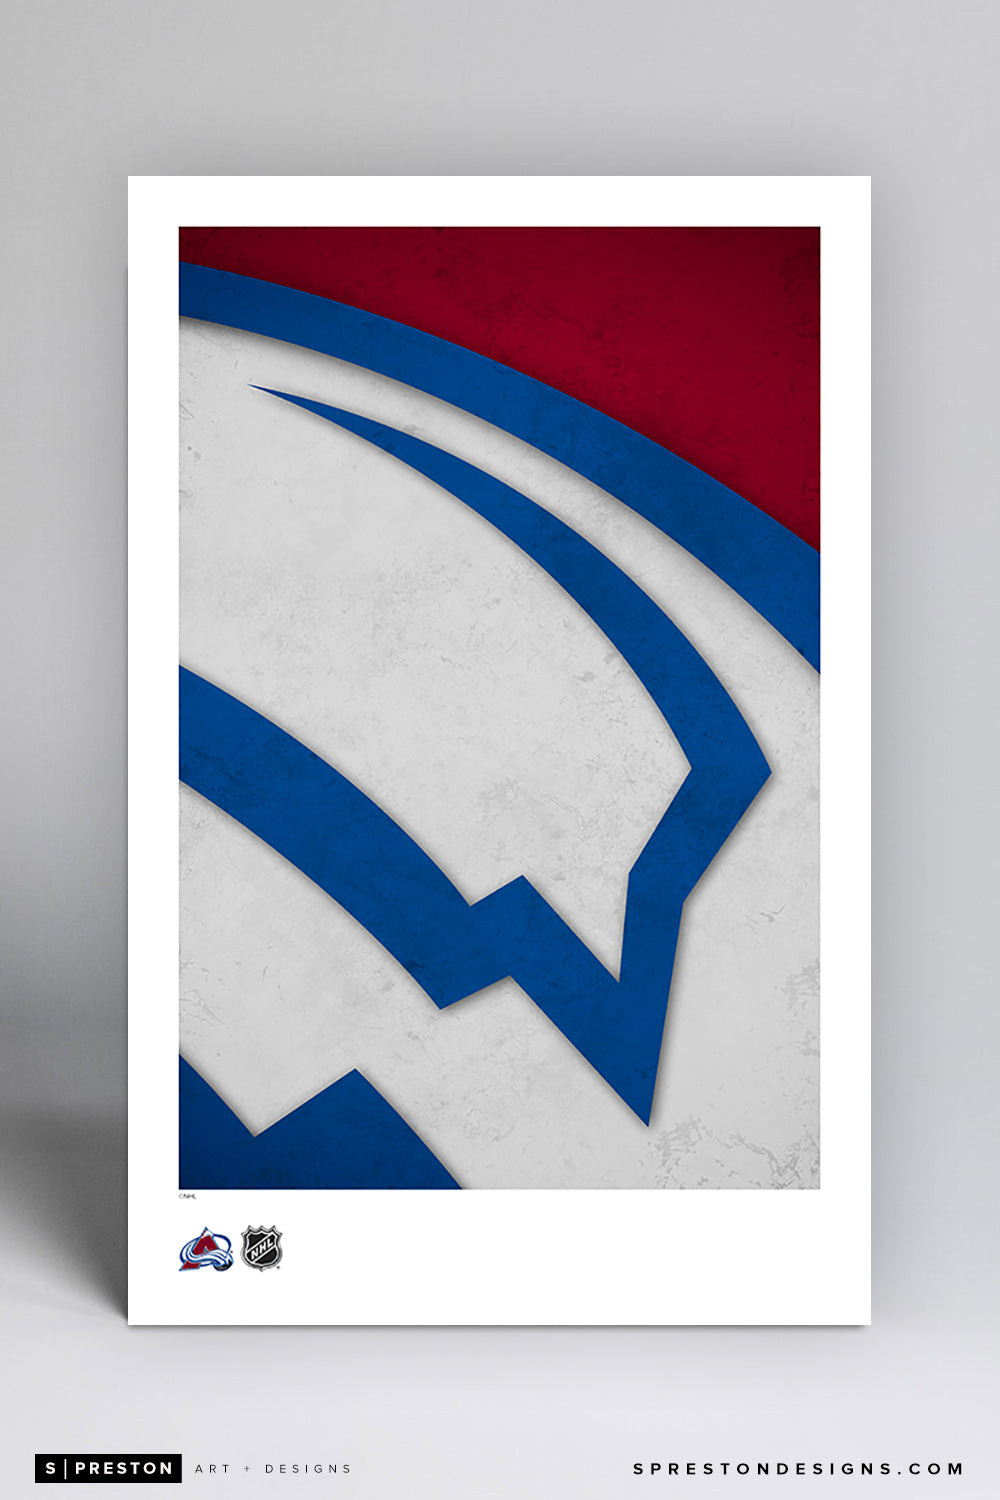 Minimalist Logo - Colorado Avalanche Poster Print Colorado Avalanche - S Preston